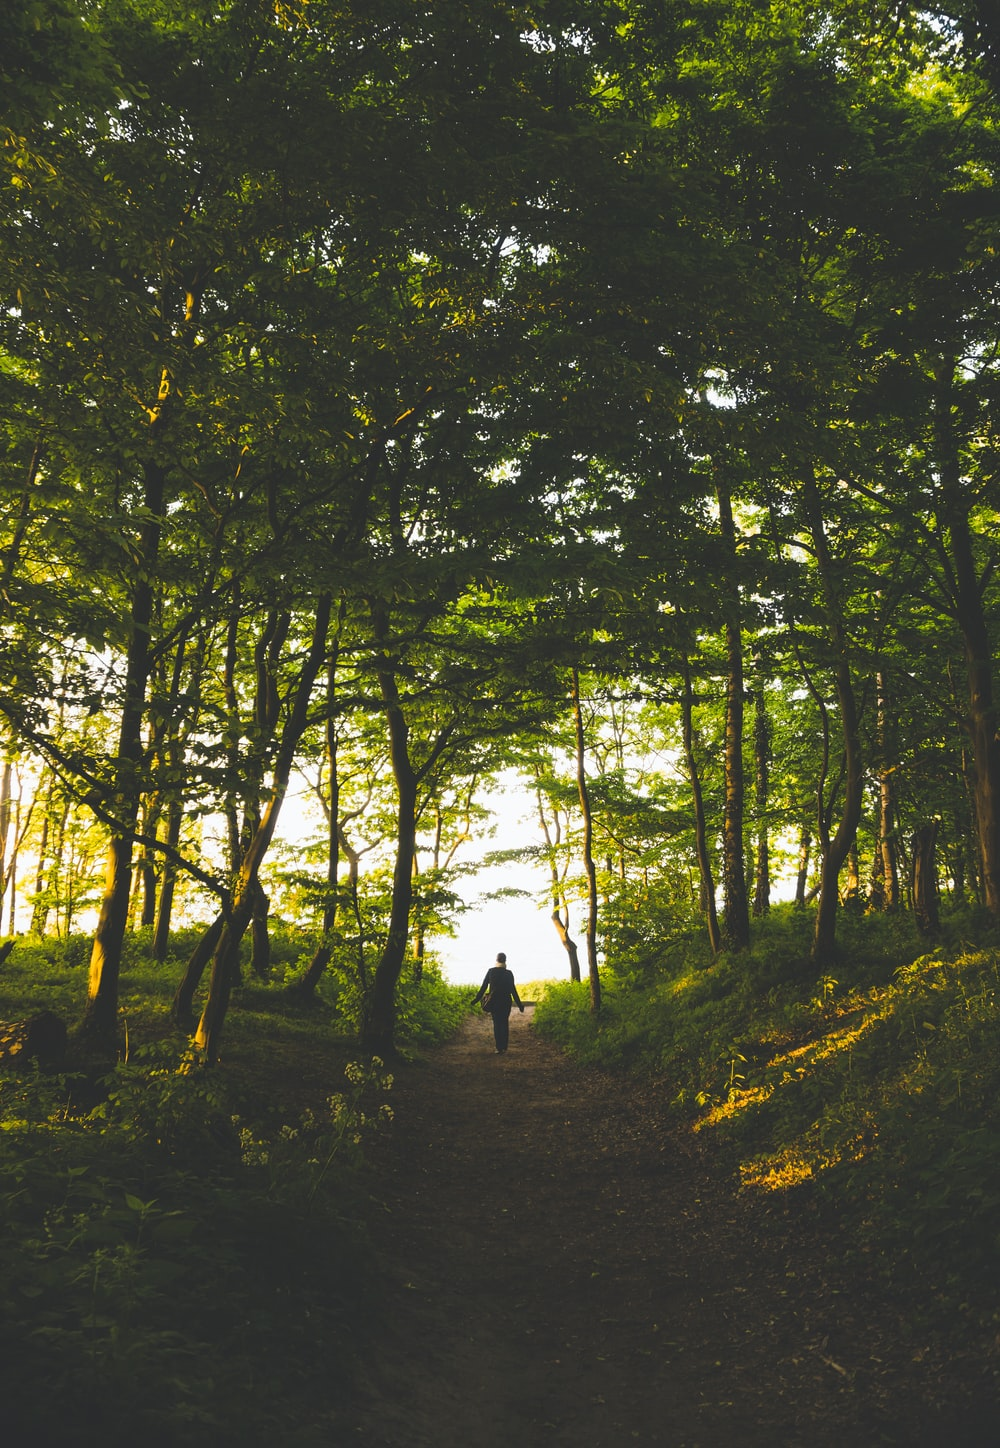 person standing in woods